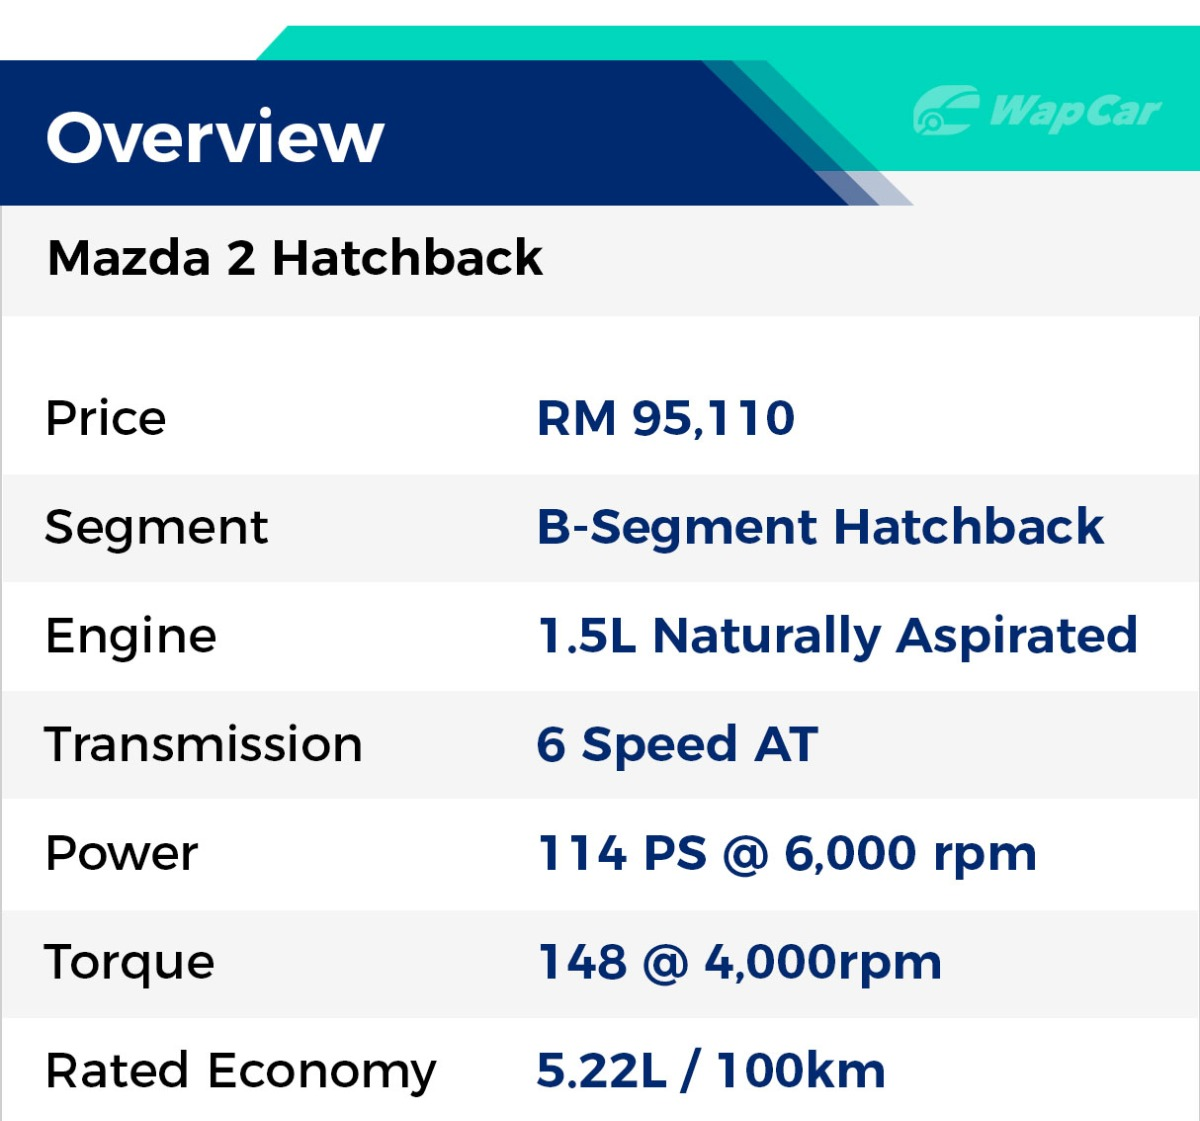 Overview of Mazda 2 HB